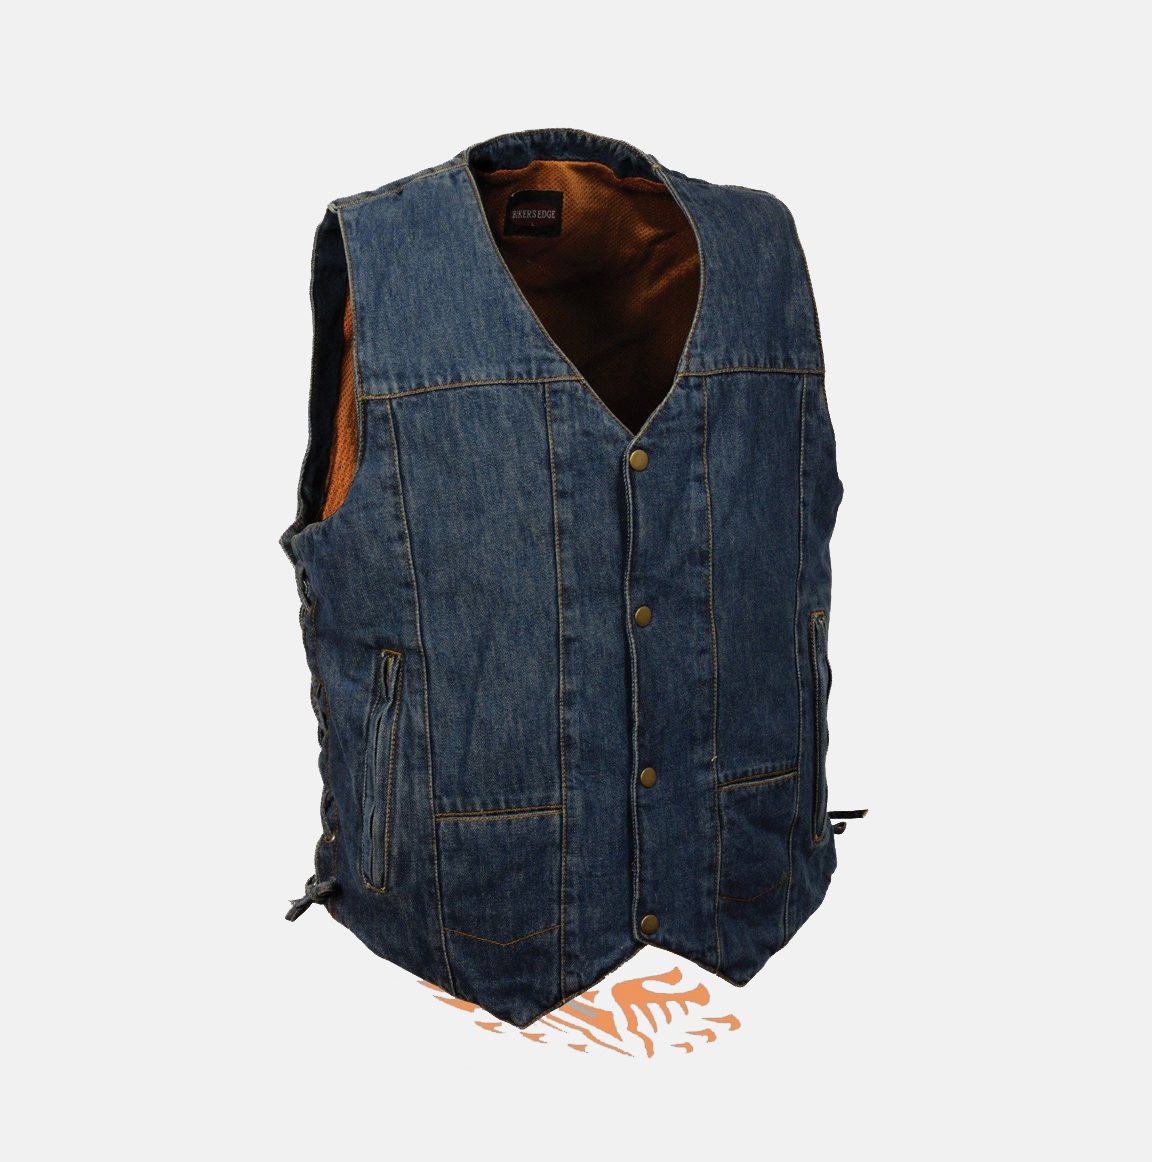 Men's Always love denim stuff and when it comes to bike riding denim motorcycle vest is the first choice of every gentle men. Here we have huge collection of blue and black denim or jeans with various colors and styles in jackets like club vest, jackets with laces, stripes, xelement, dirty blue denim, with side and gun pockets, with removable.